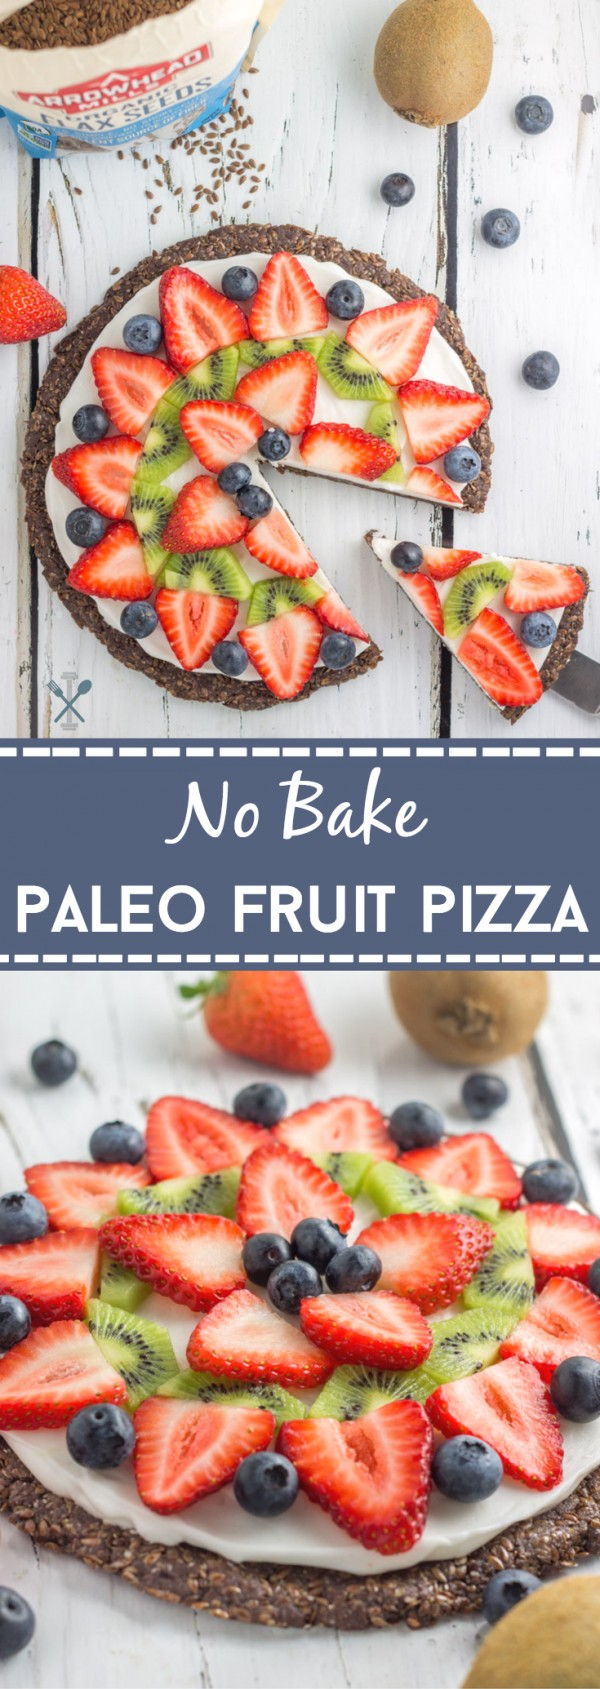 Get the recipe Paleo Fruit Pizza @recipes_to_go